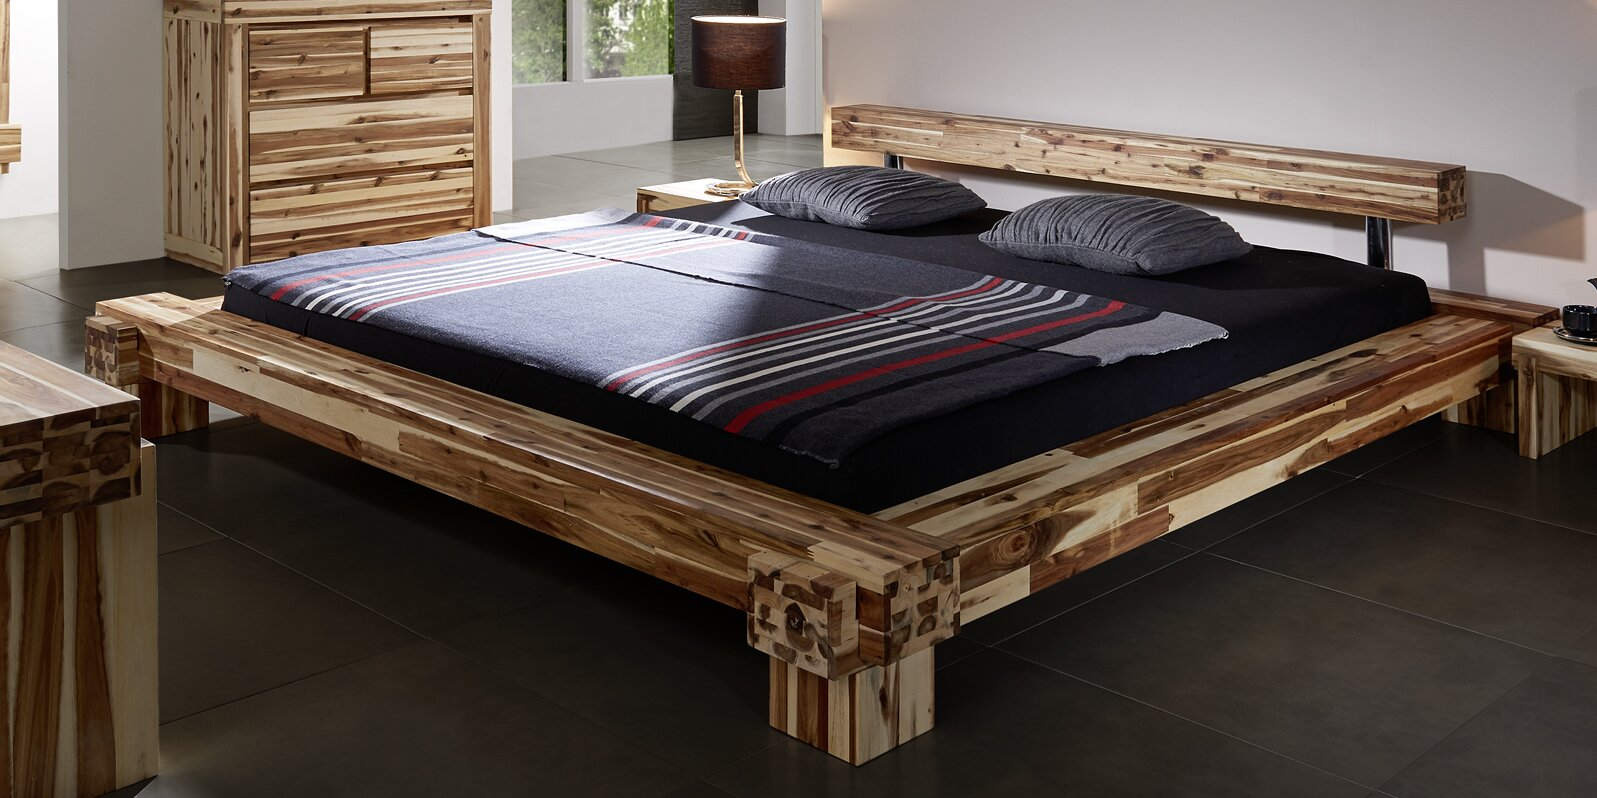 sam stil art m bel gmbh massivholzbett casablanca. Black Bedroom Furniture Sets. Home Design Ideas